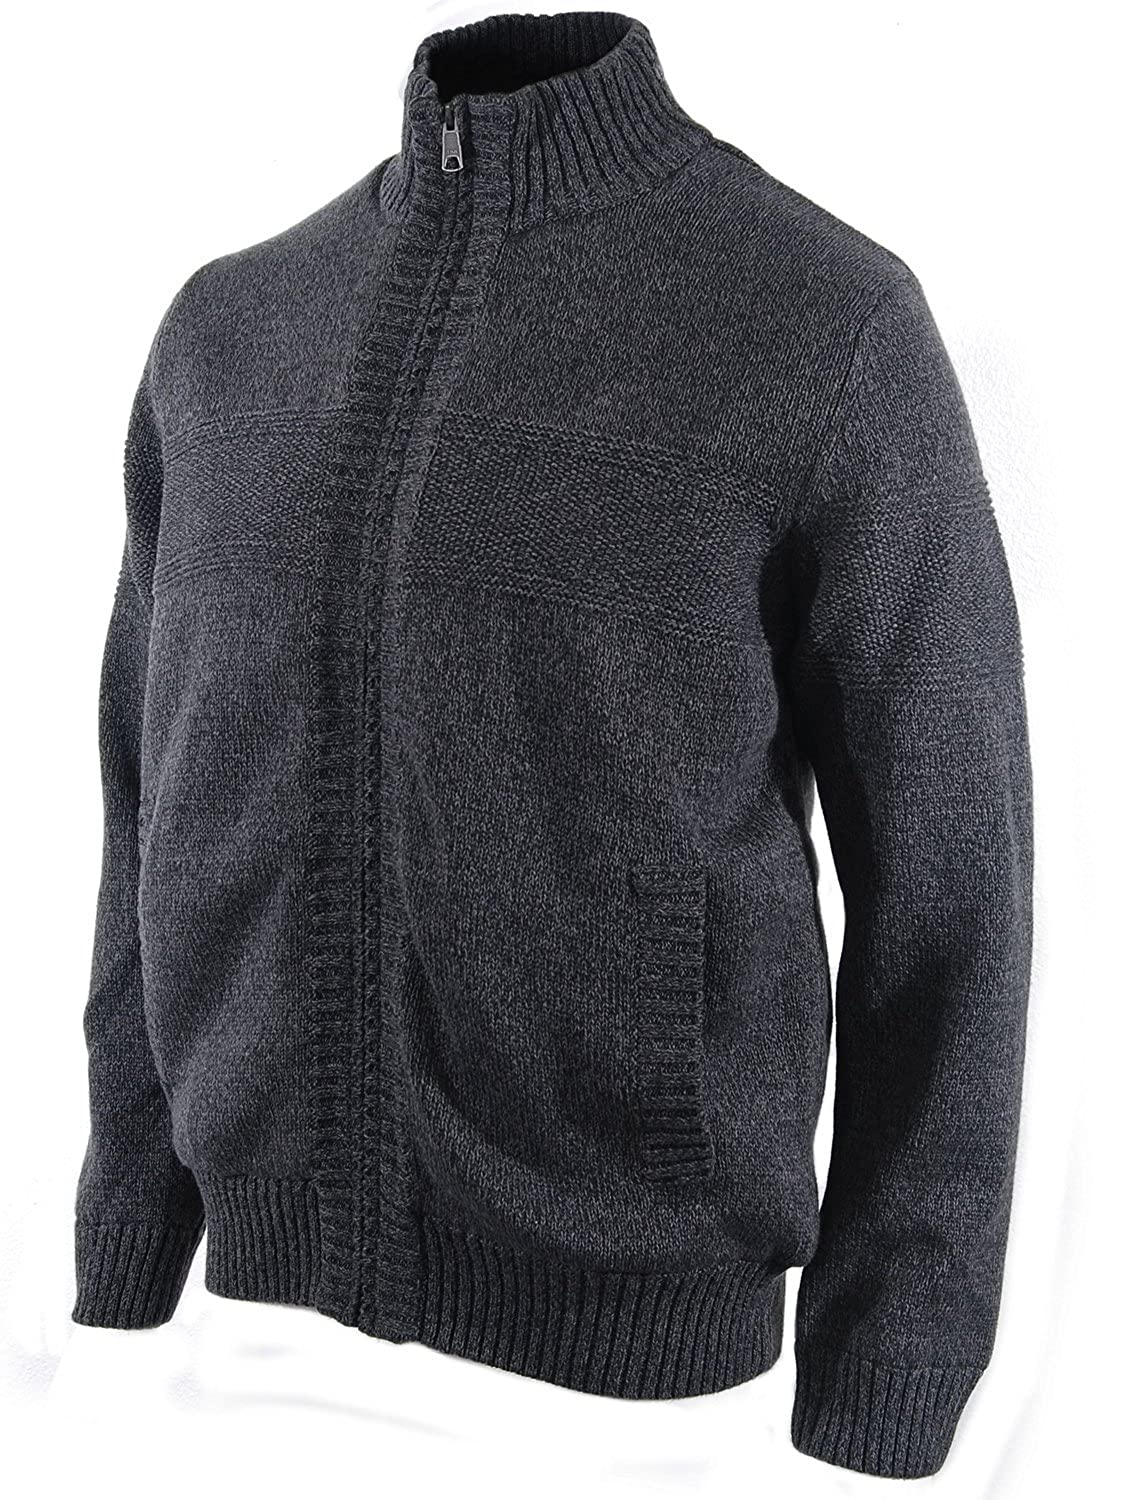 Boston Traders Men's Cable Knit Sherpa-Lined Full Zip Sweater at ...